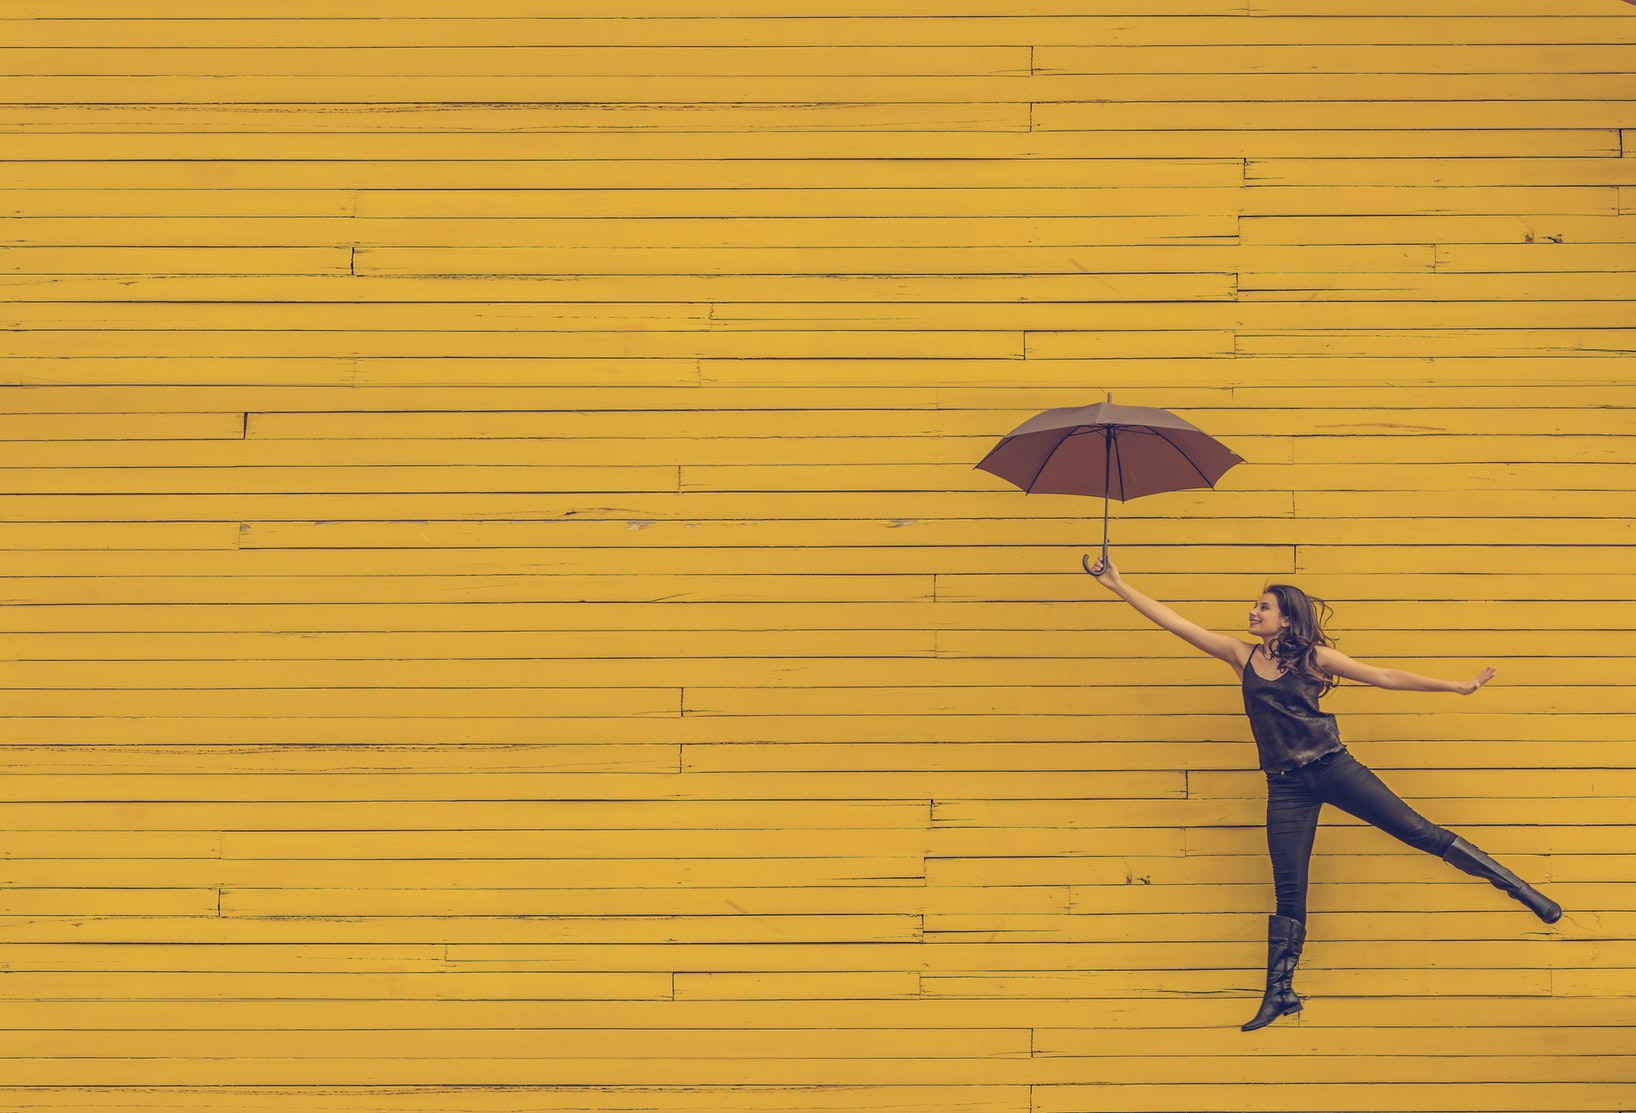 Brunette woman holding brown umbrella against yellow wall